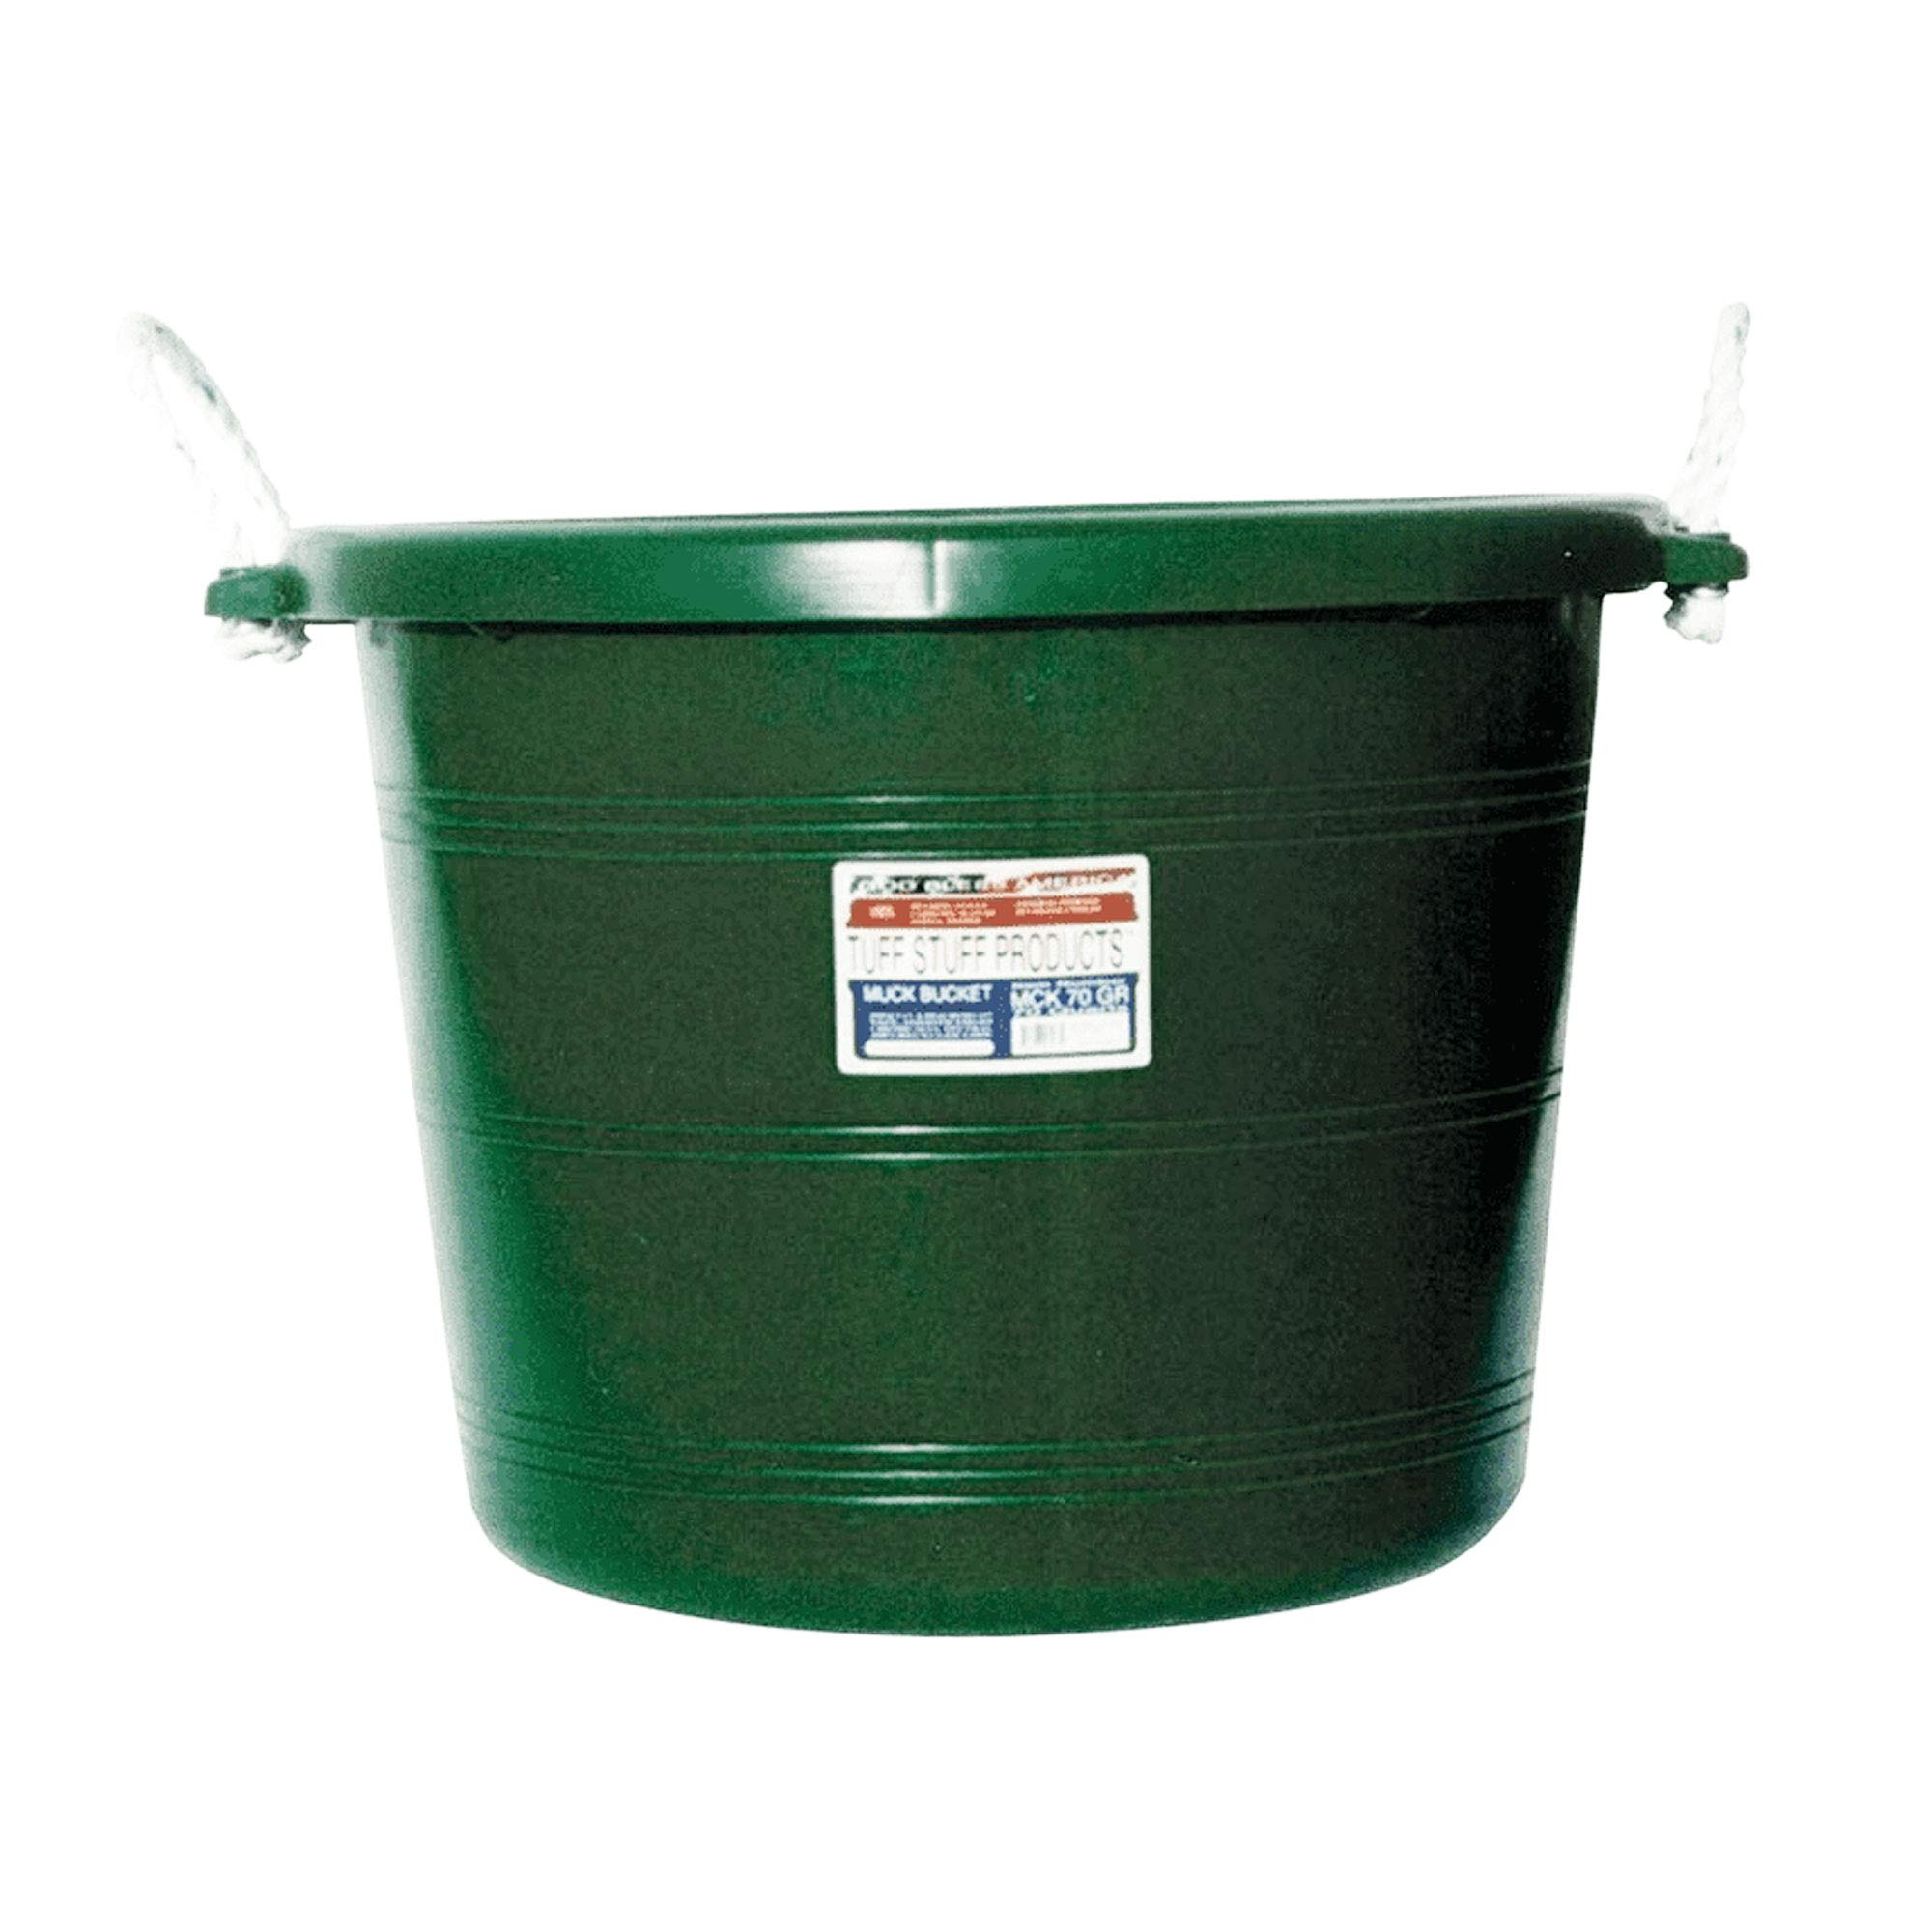 Tuff Stuff Products MCK70GR Large 17.5 Gallon Muck Bucket with Handles, Green by Tuff Stuff